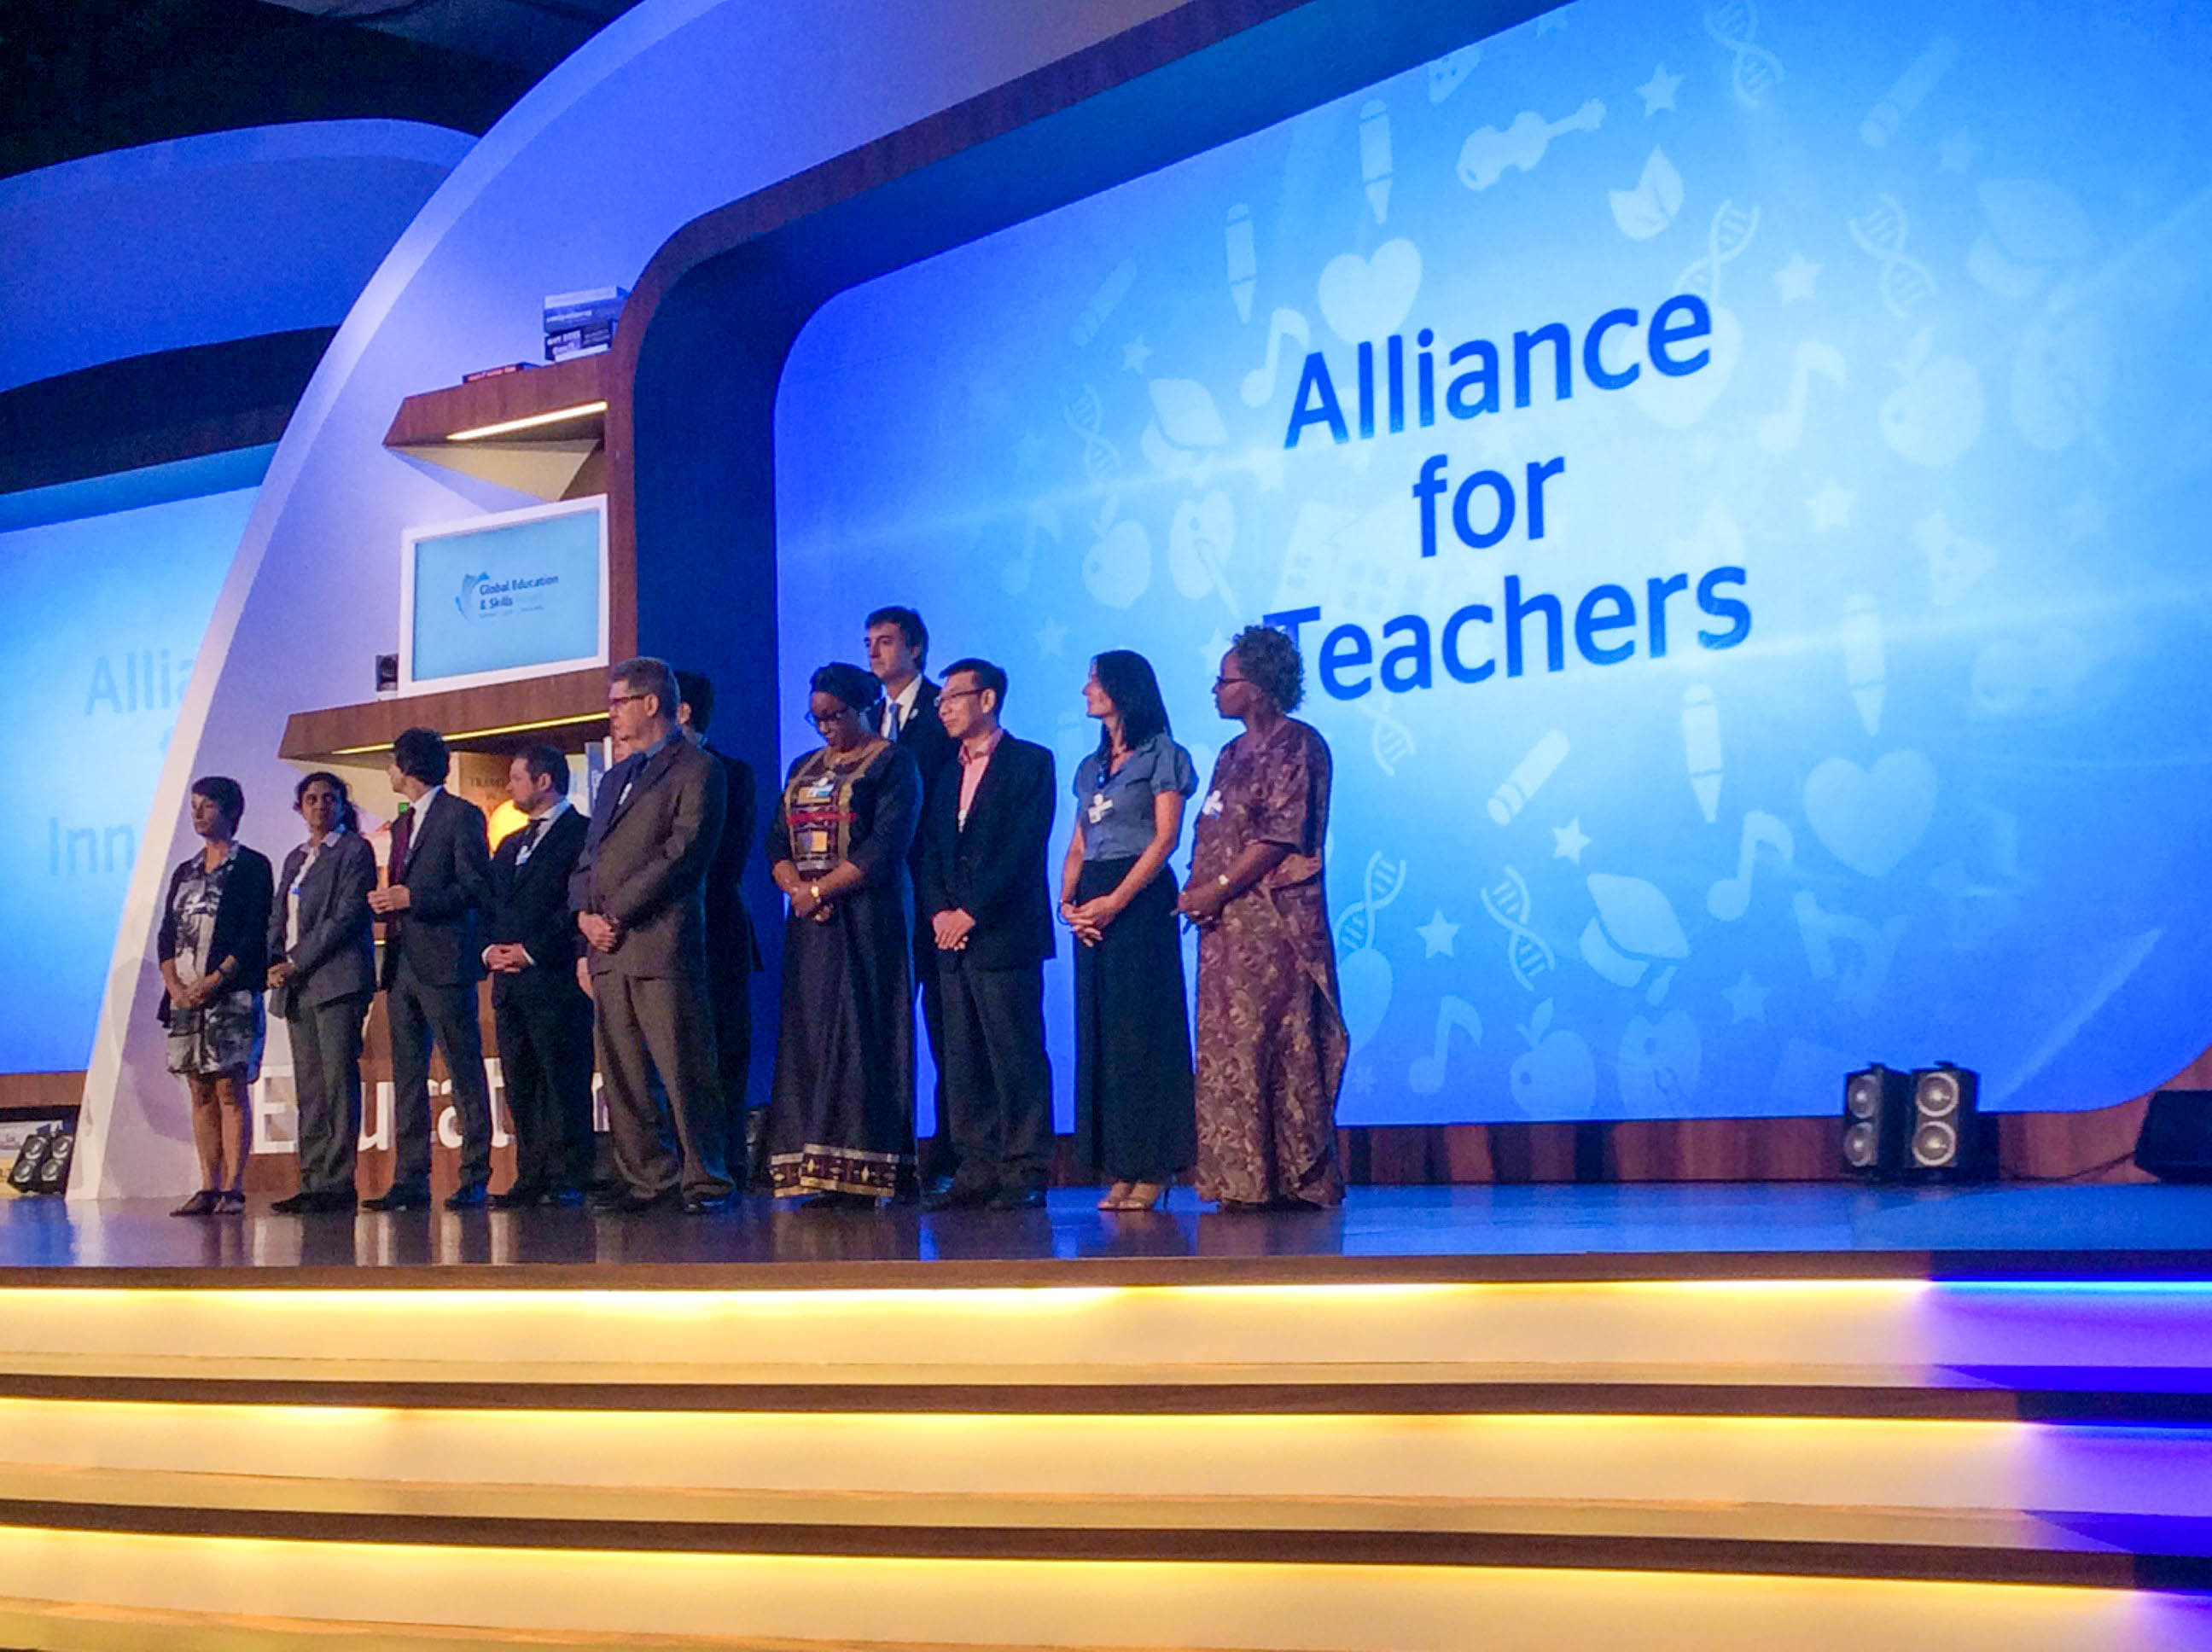 Alliance for Teachersedit